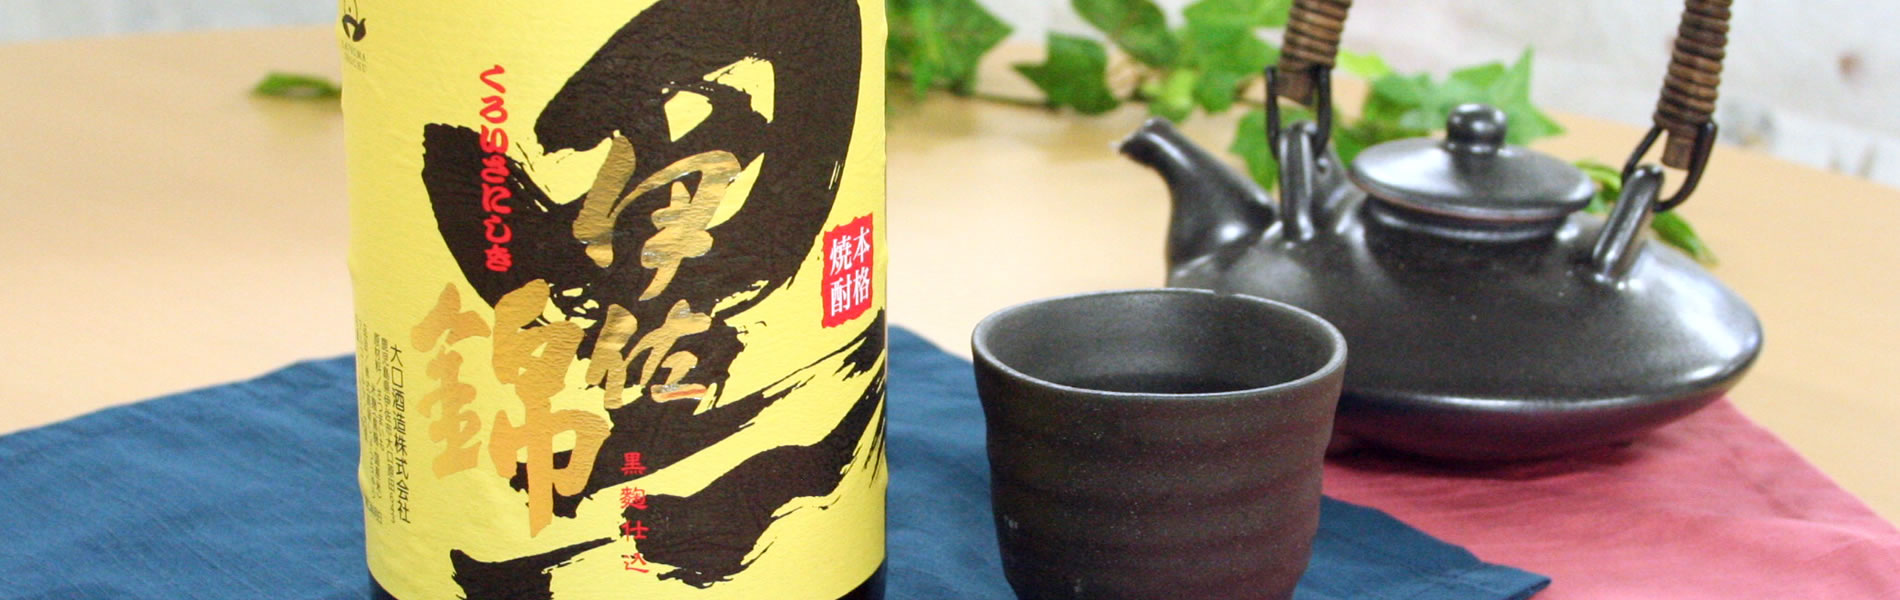 Traditional brewing methods and black koji